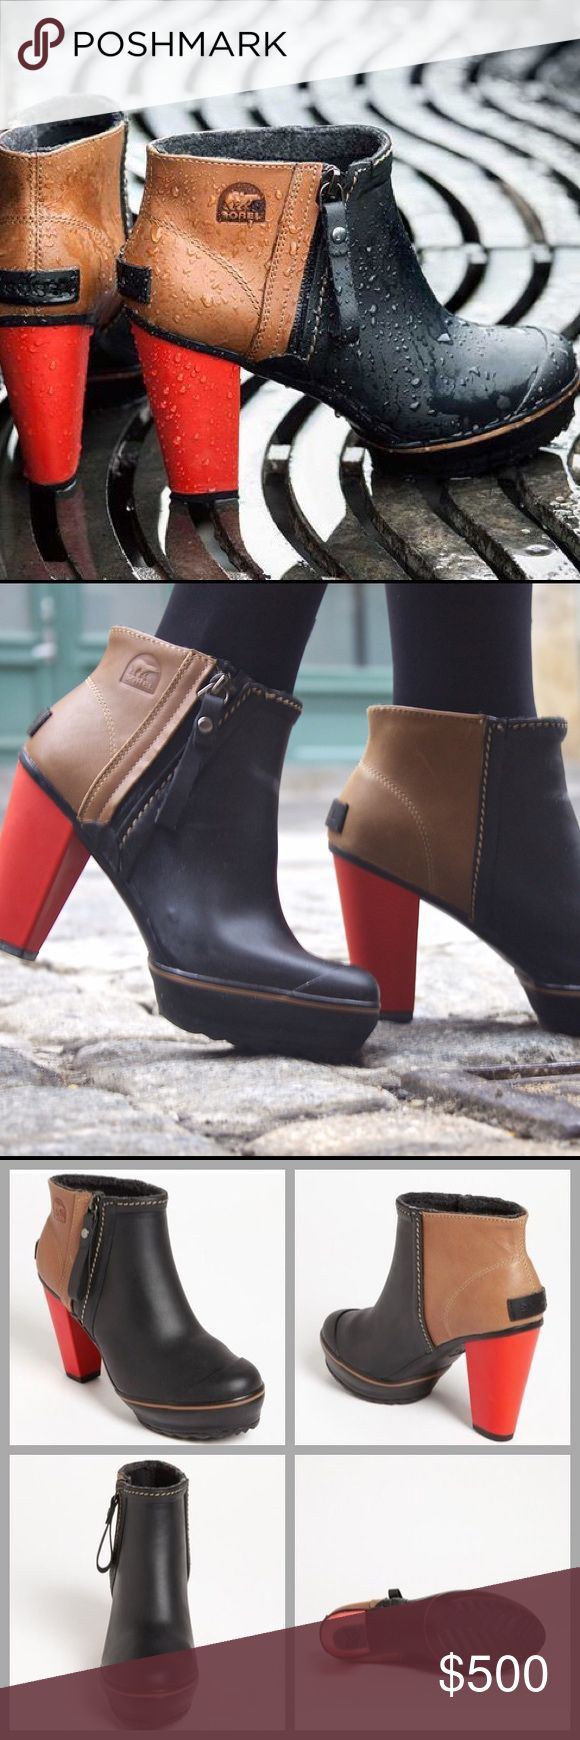 """❤️Sorel Rain Boots❤️ I keep changing my mind on selling these, I love them so much! They have been worn but are still in good condition. I will only consider reasonable offers through the offer button, NO TRADES!    Bold color blocking and a ladylike heel boost the street-smart appeal of an essential puddle-proof boot.   4"""" heel; 1"""" platform. 7"""" boot shaft. Side zip closure. Waterproof. Vulcanized rubber and full-grain leather upper/Lycra® spandex lining/rubber sole. Sorel Shoes Winter…"""